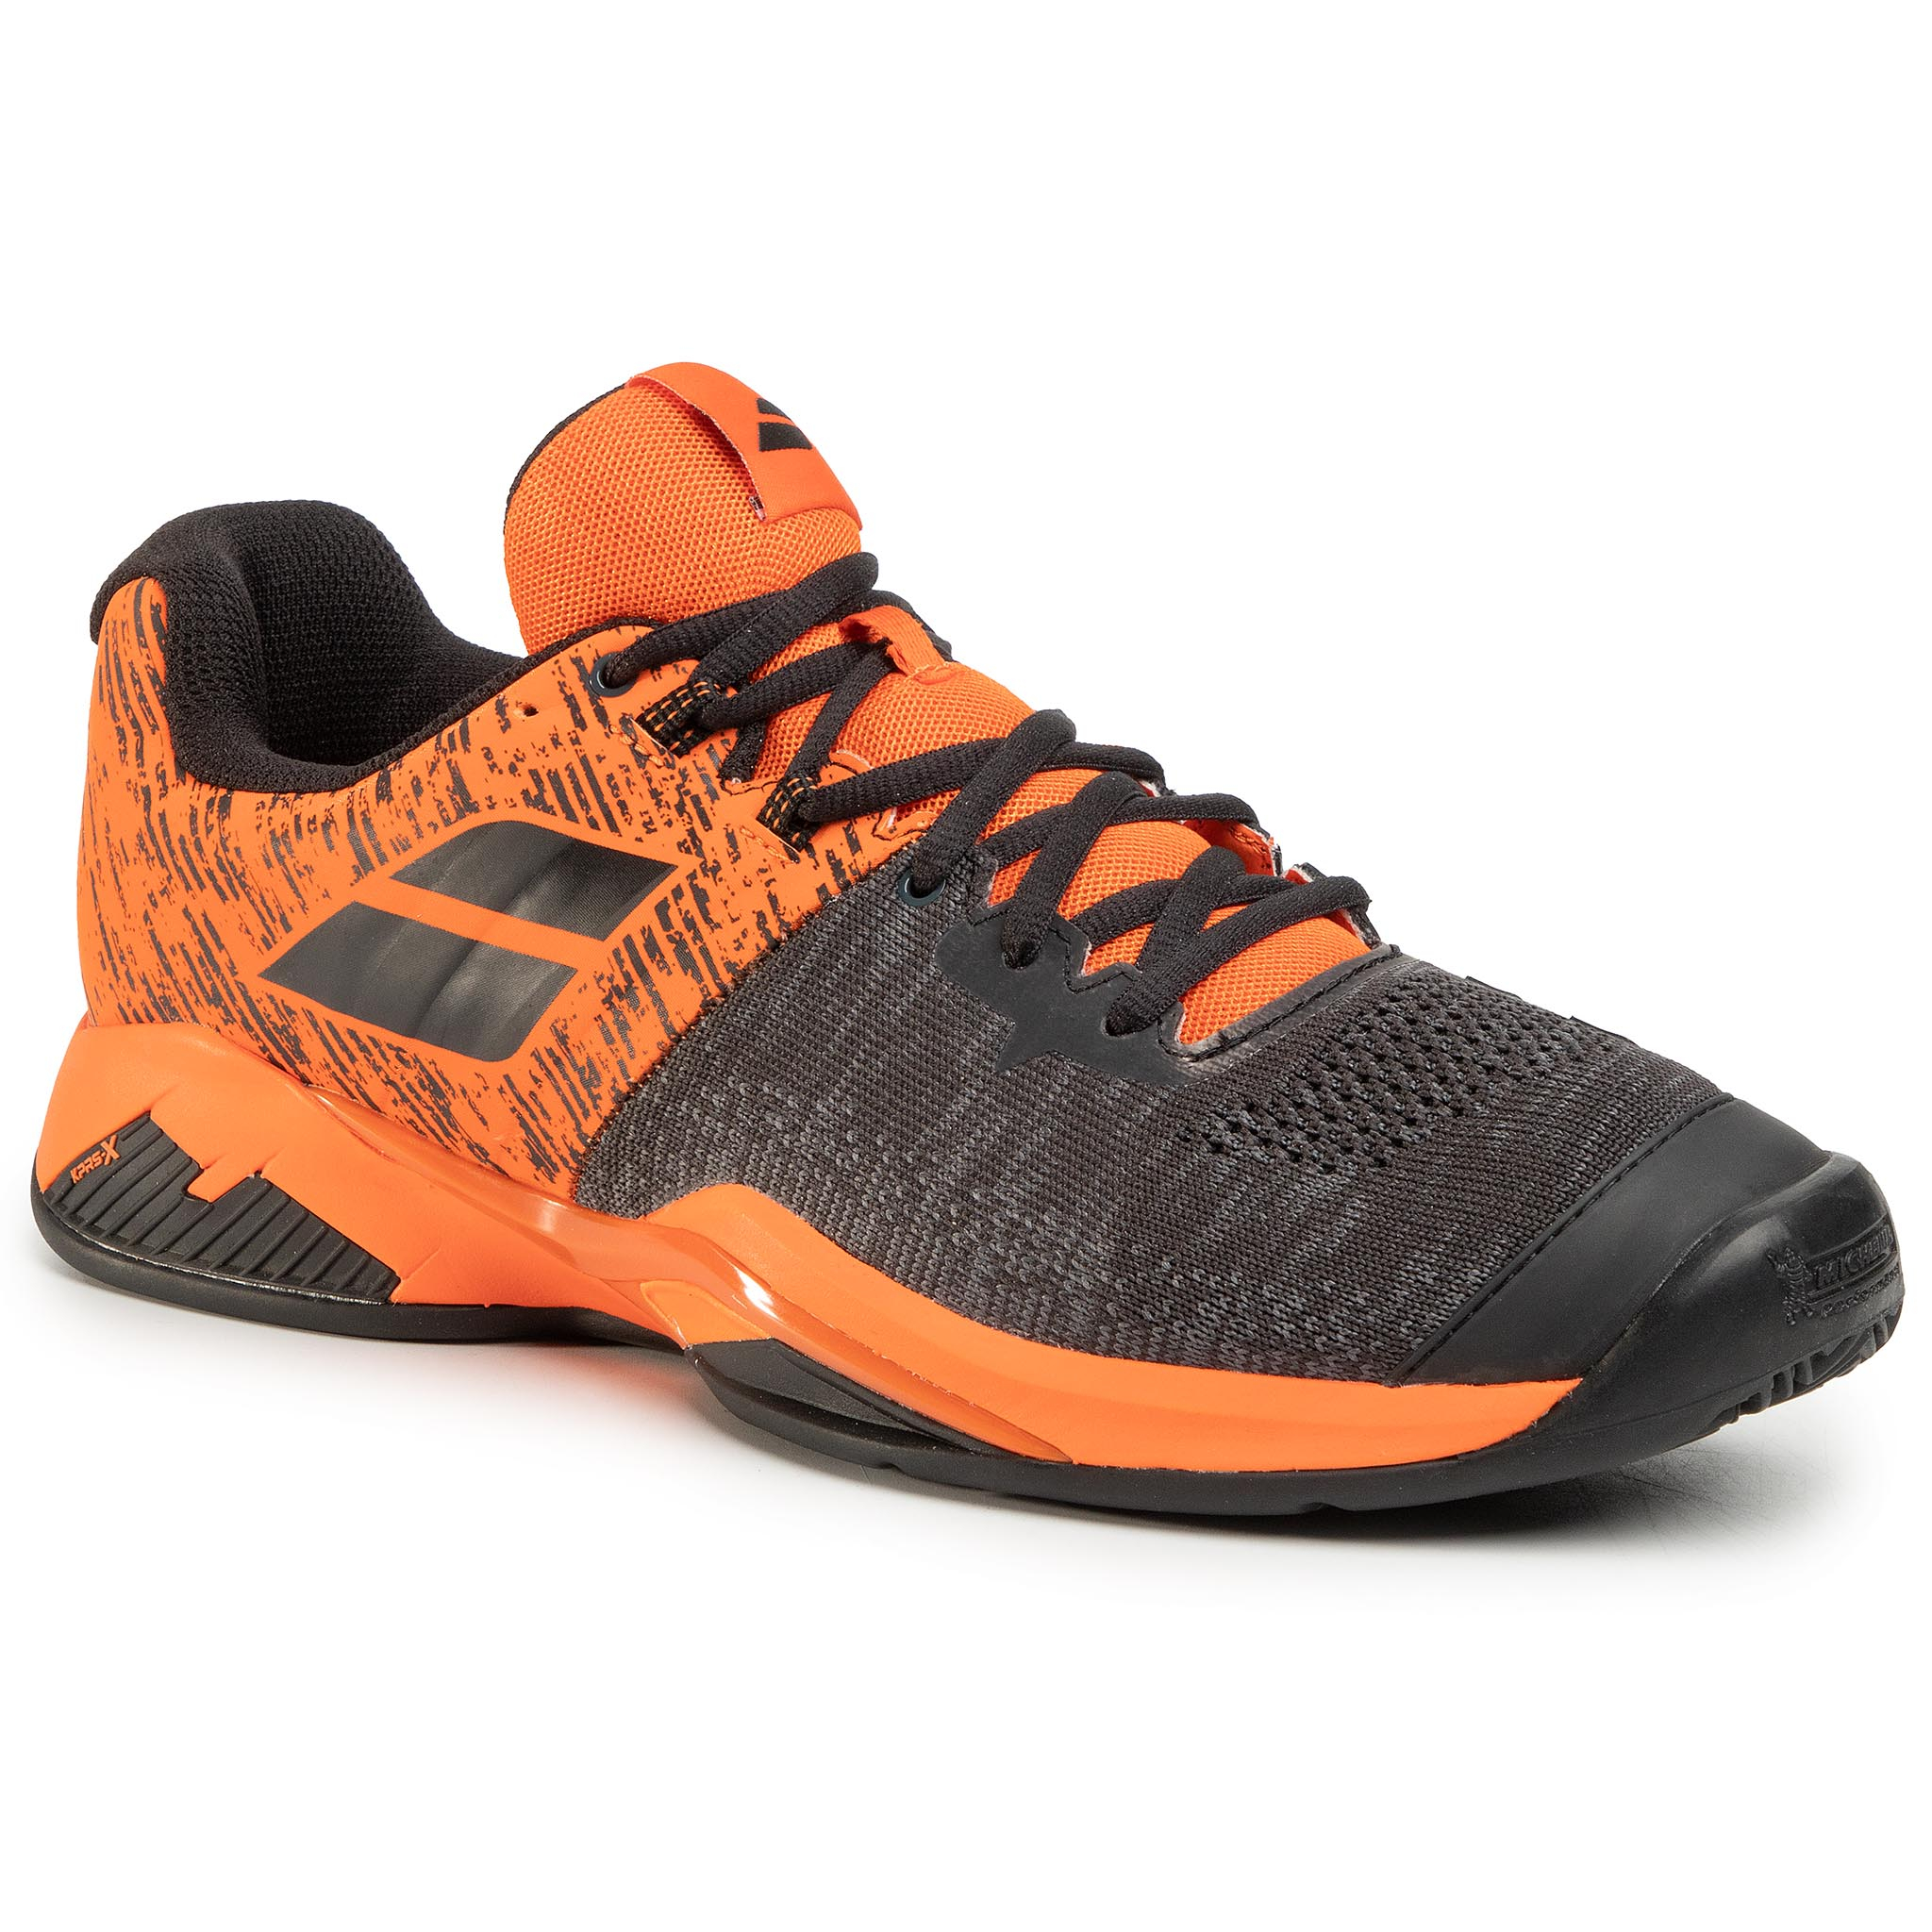 Pantofi Babolat - Propulse Blast Clay Men 30s20446 Black/Golden Poppy imagine epantofi.ro 2021